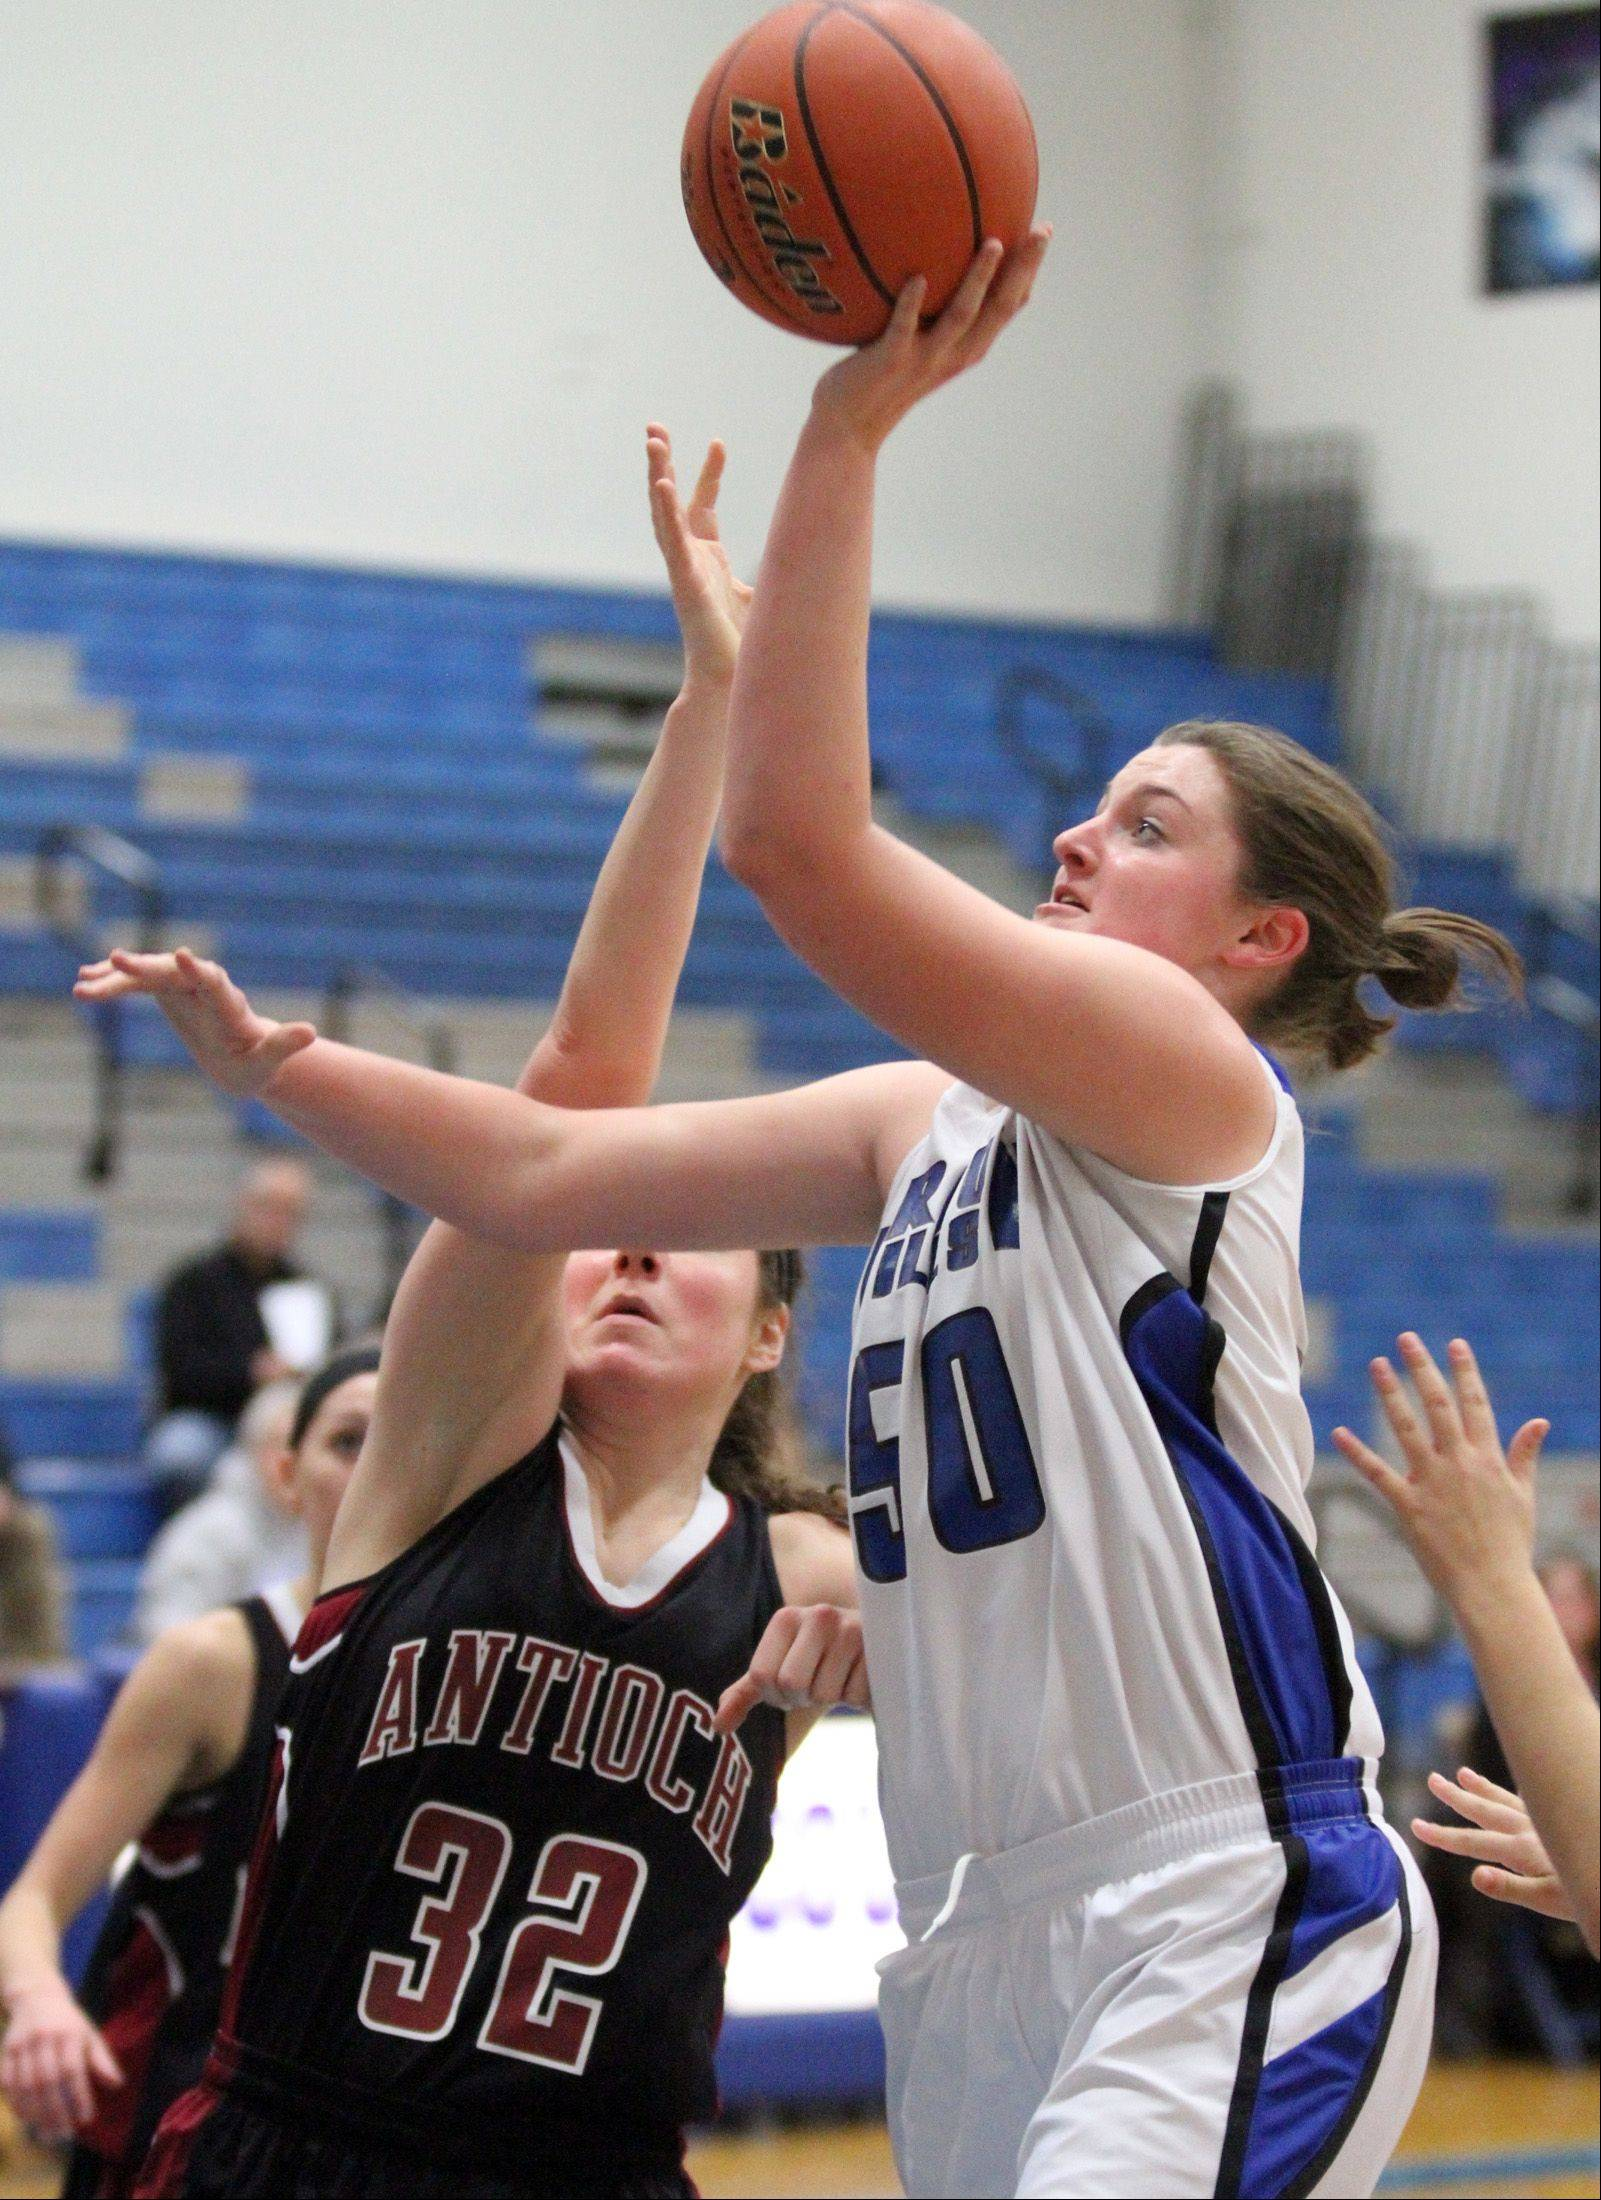 Images: Antioch vs. Vernon Hills girls basketball